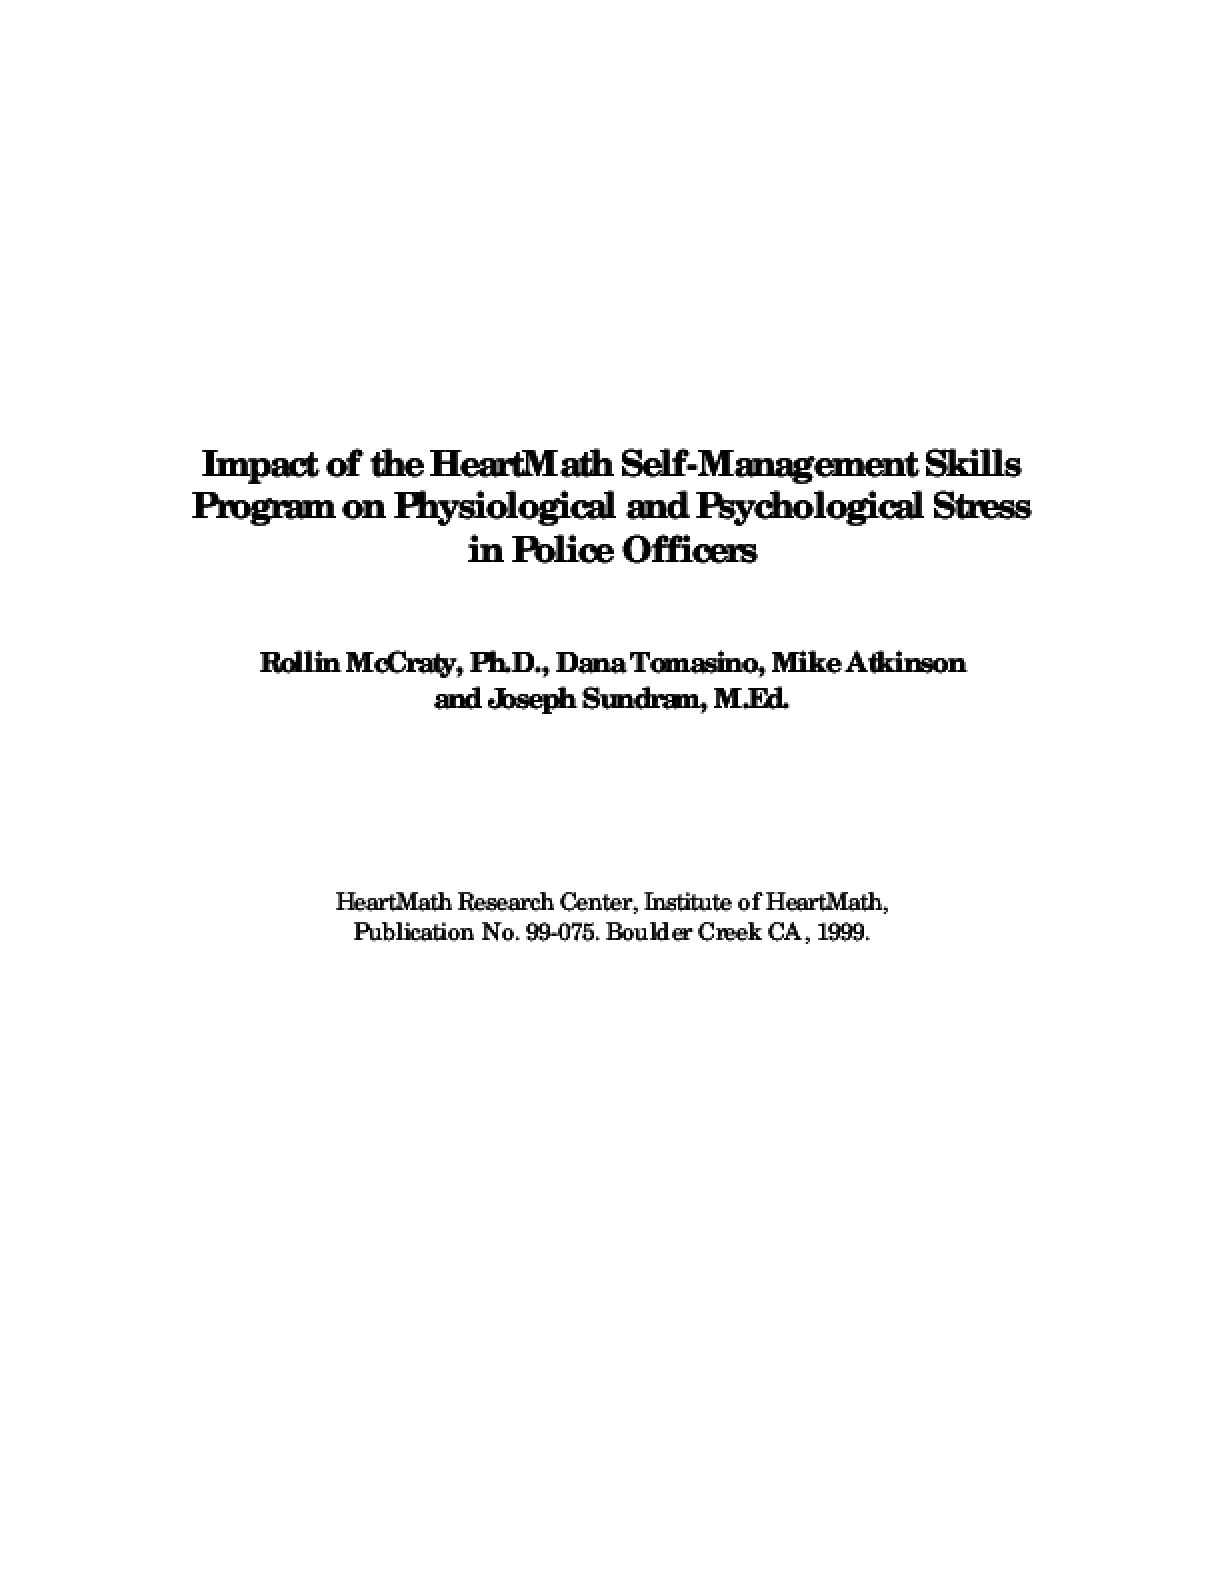 Impact of the HeartMath Self-Management Skills Program on Physiological and Psychological Stress in Police Officers